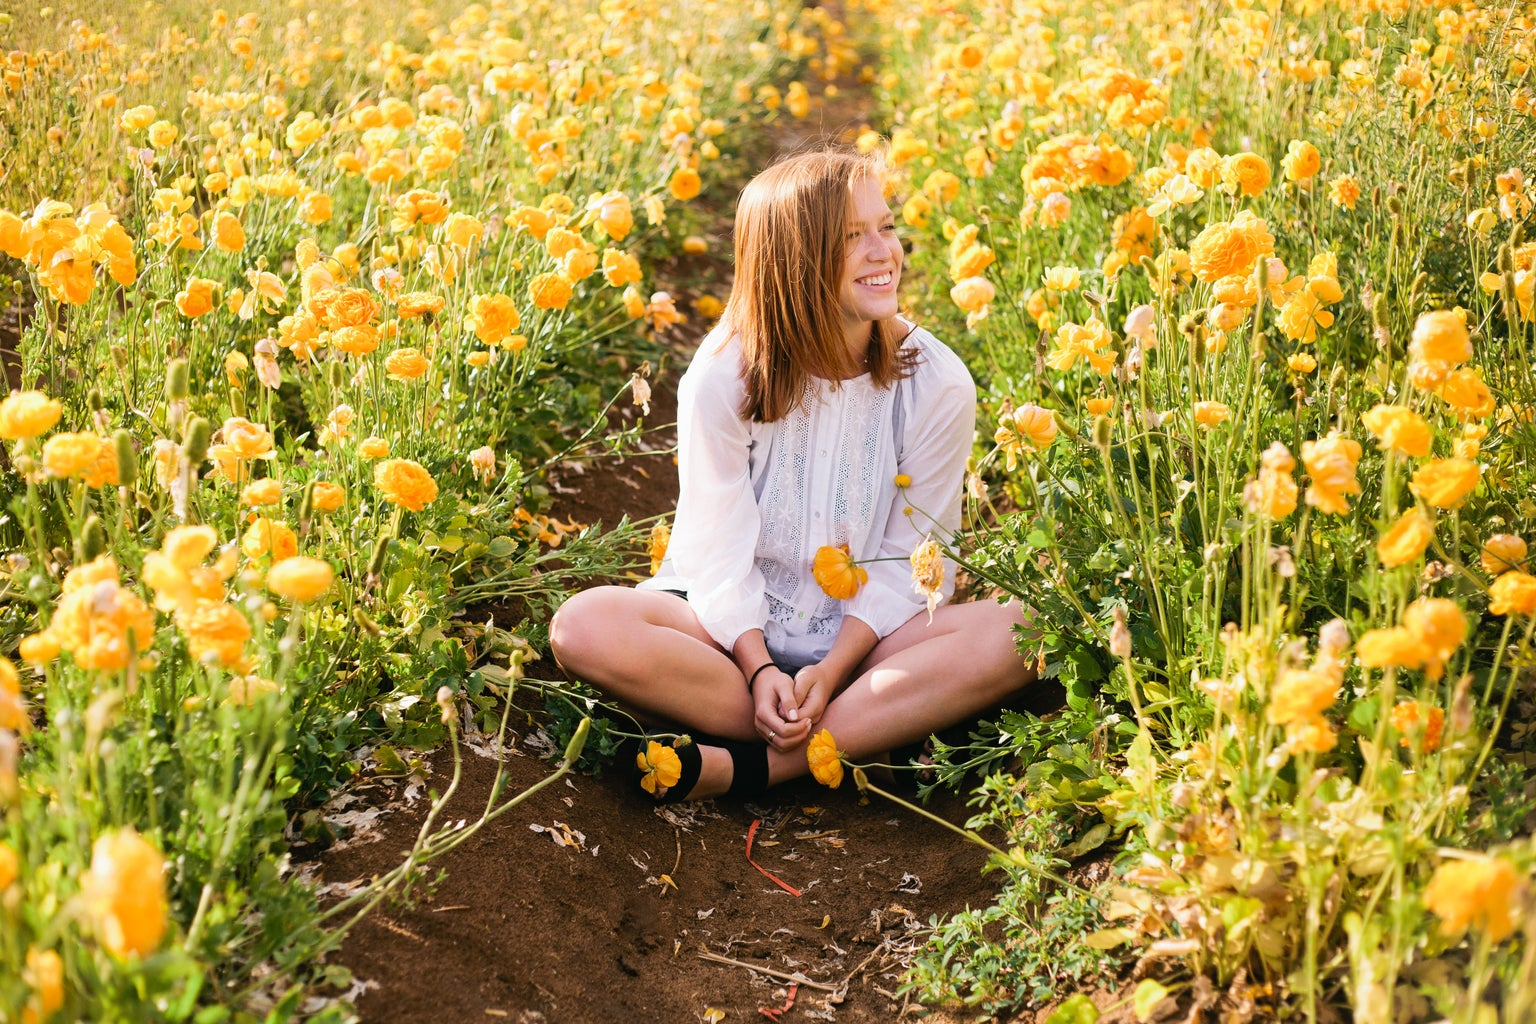 Molly Peach-Laughing In Field